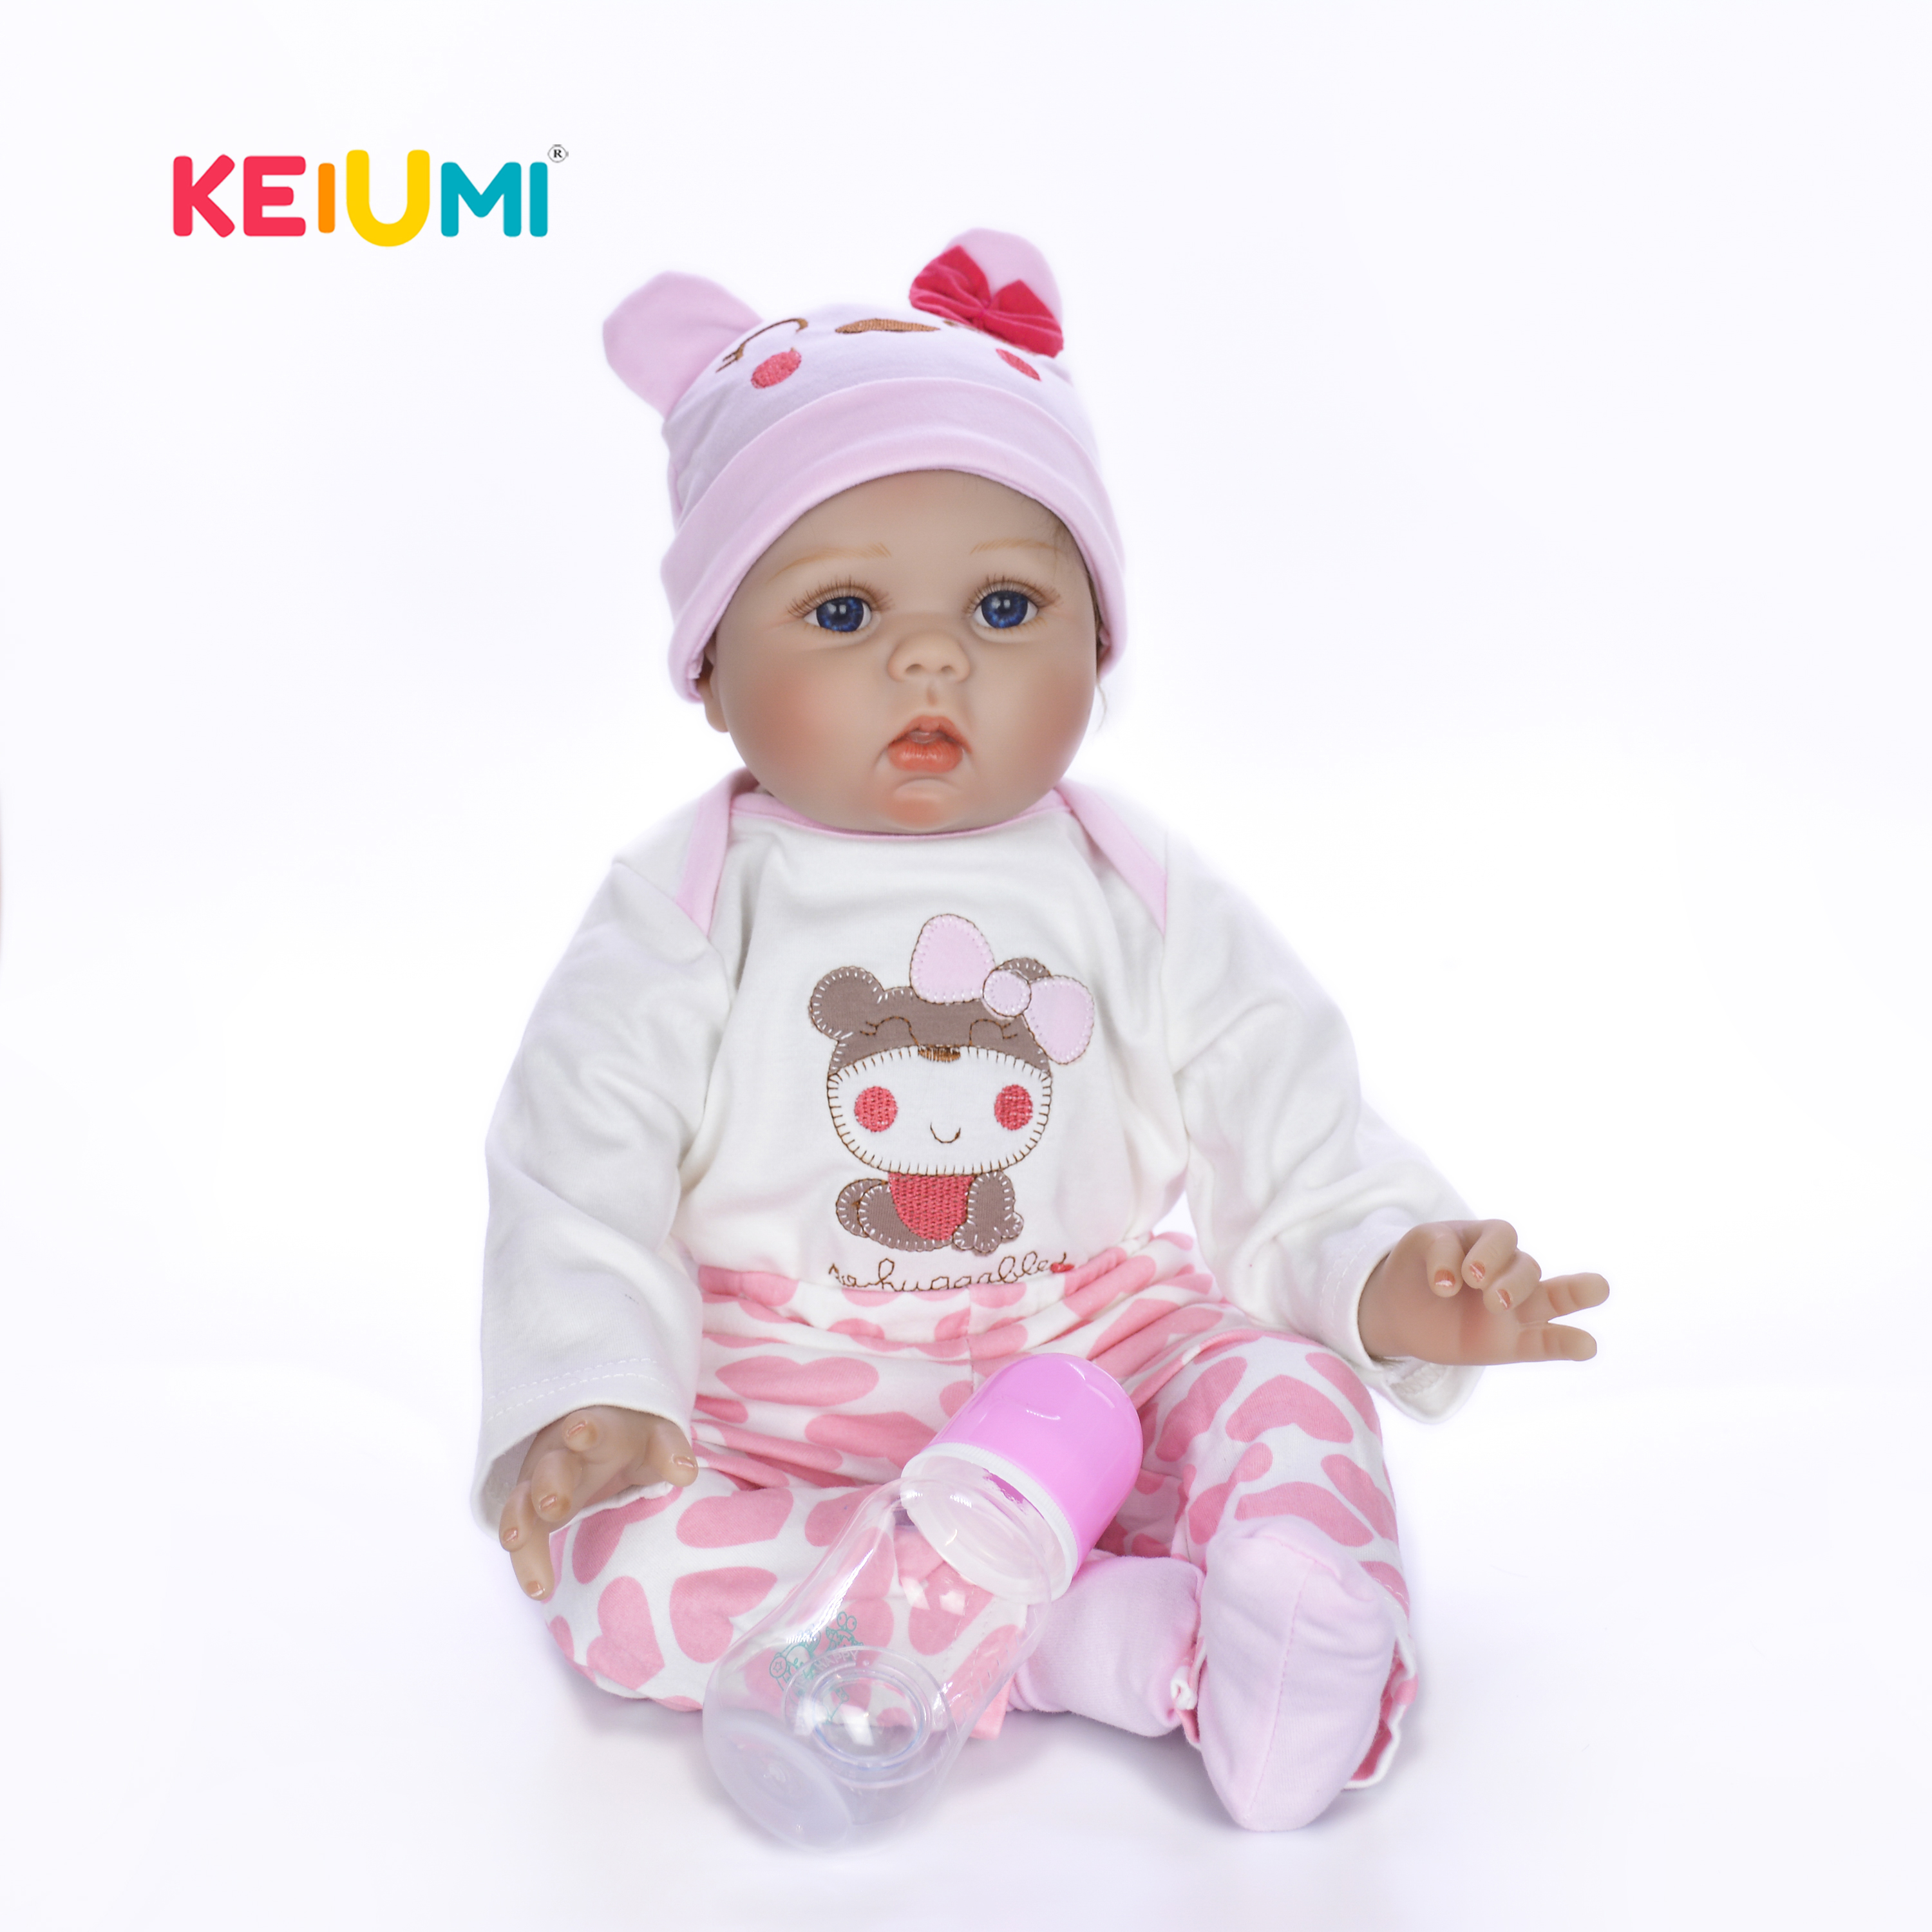 Reborn Baby Doll Soft Silicone Girl Toy 22in 55cm Pink Head Dress Lifelike